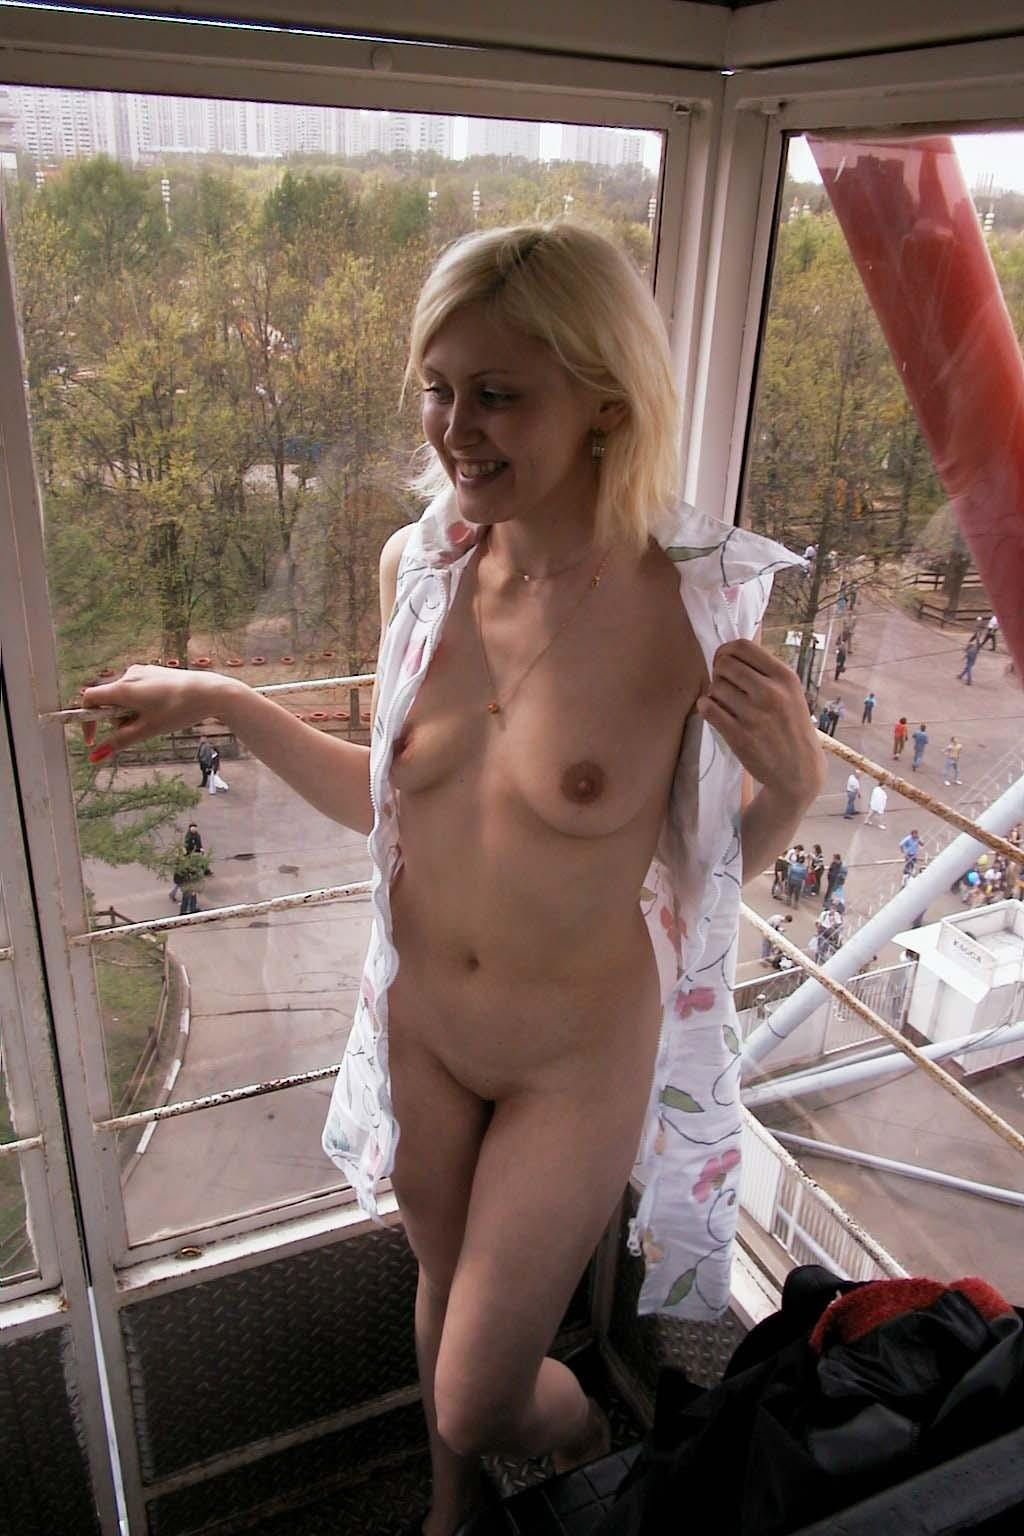 Amateur russian blonde on Ferris wheel | Russian Sexy Girls